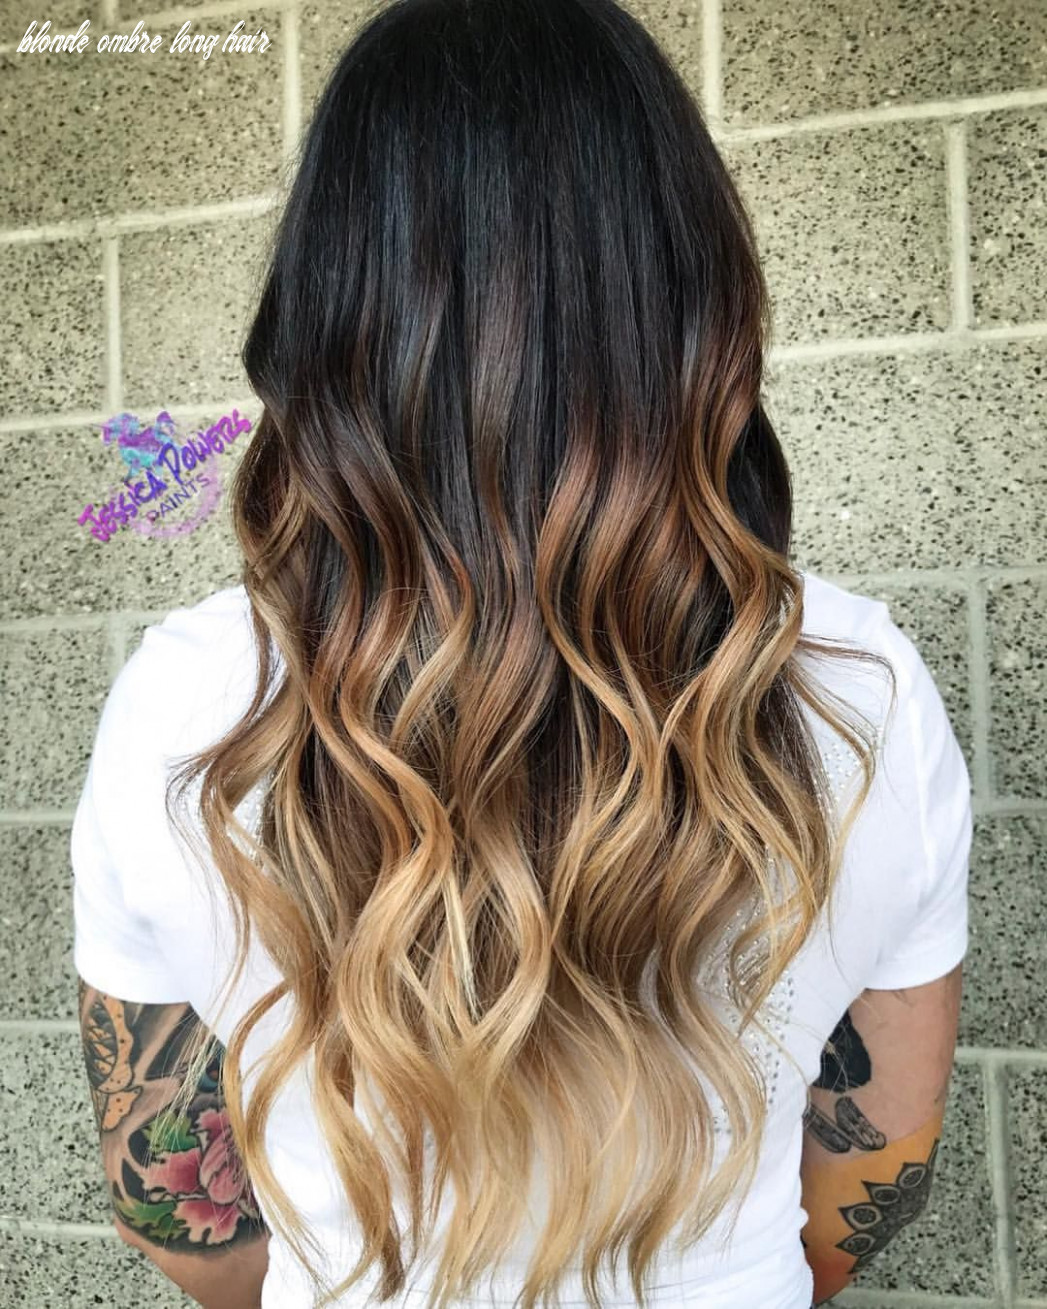 High contrast balayage ombre blonde ombré on naturally dark long